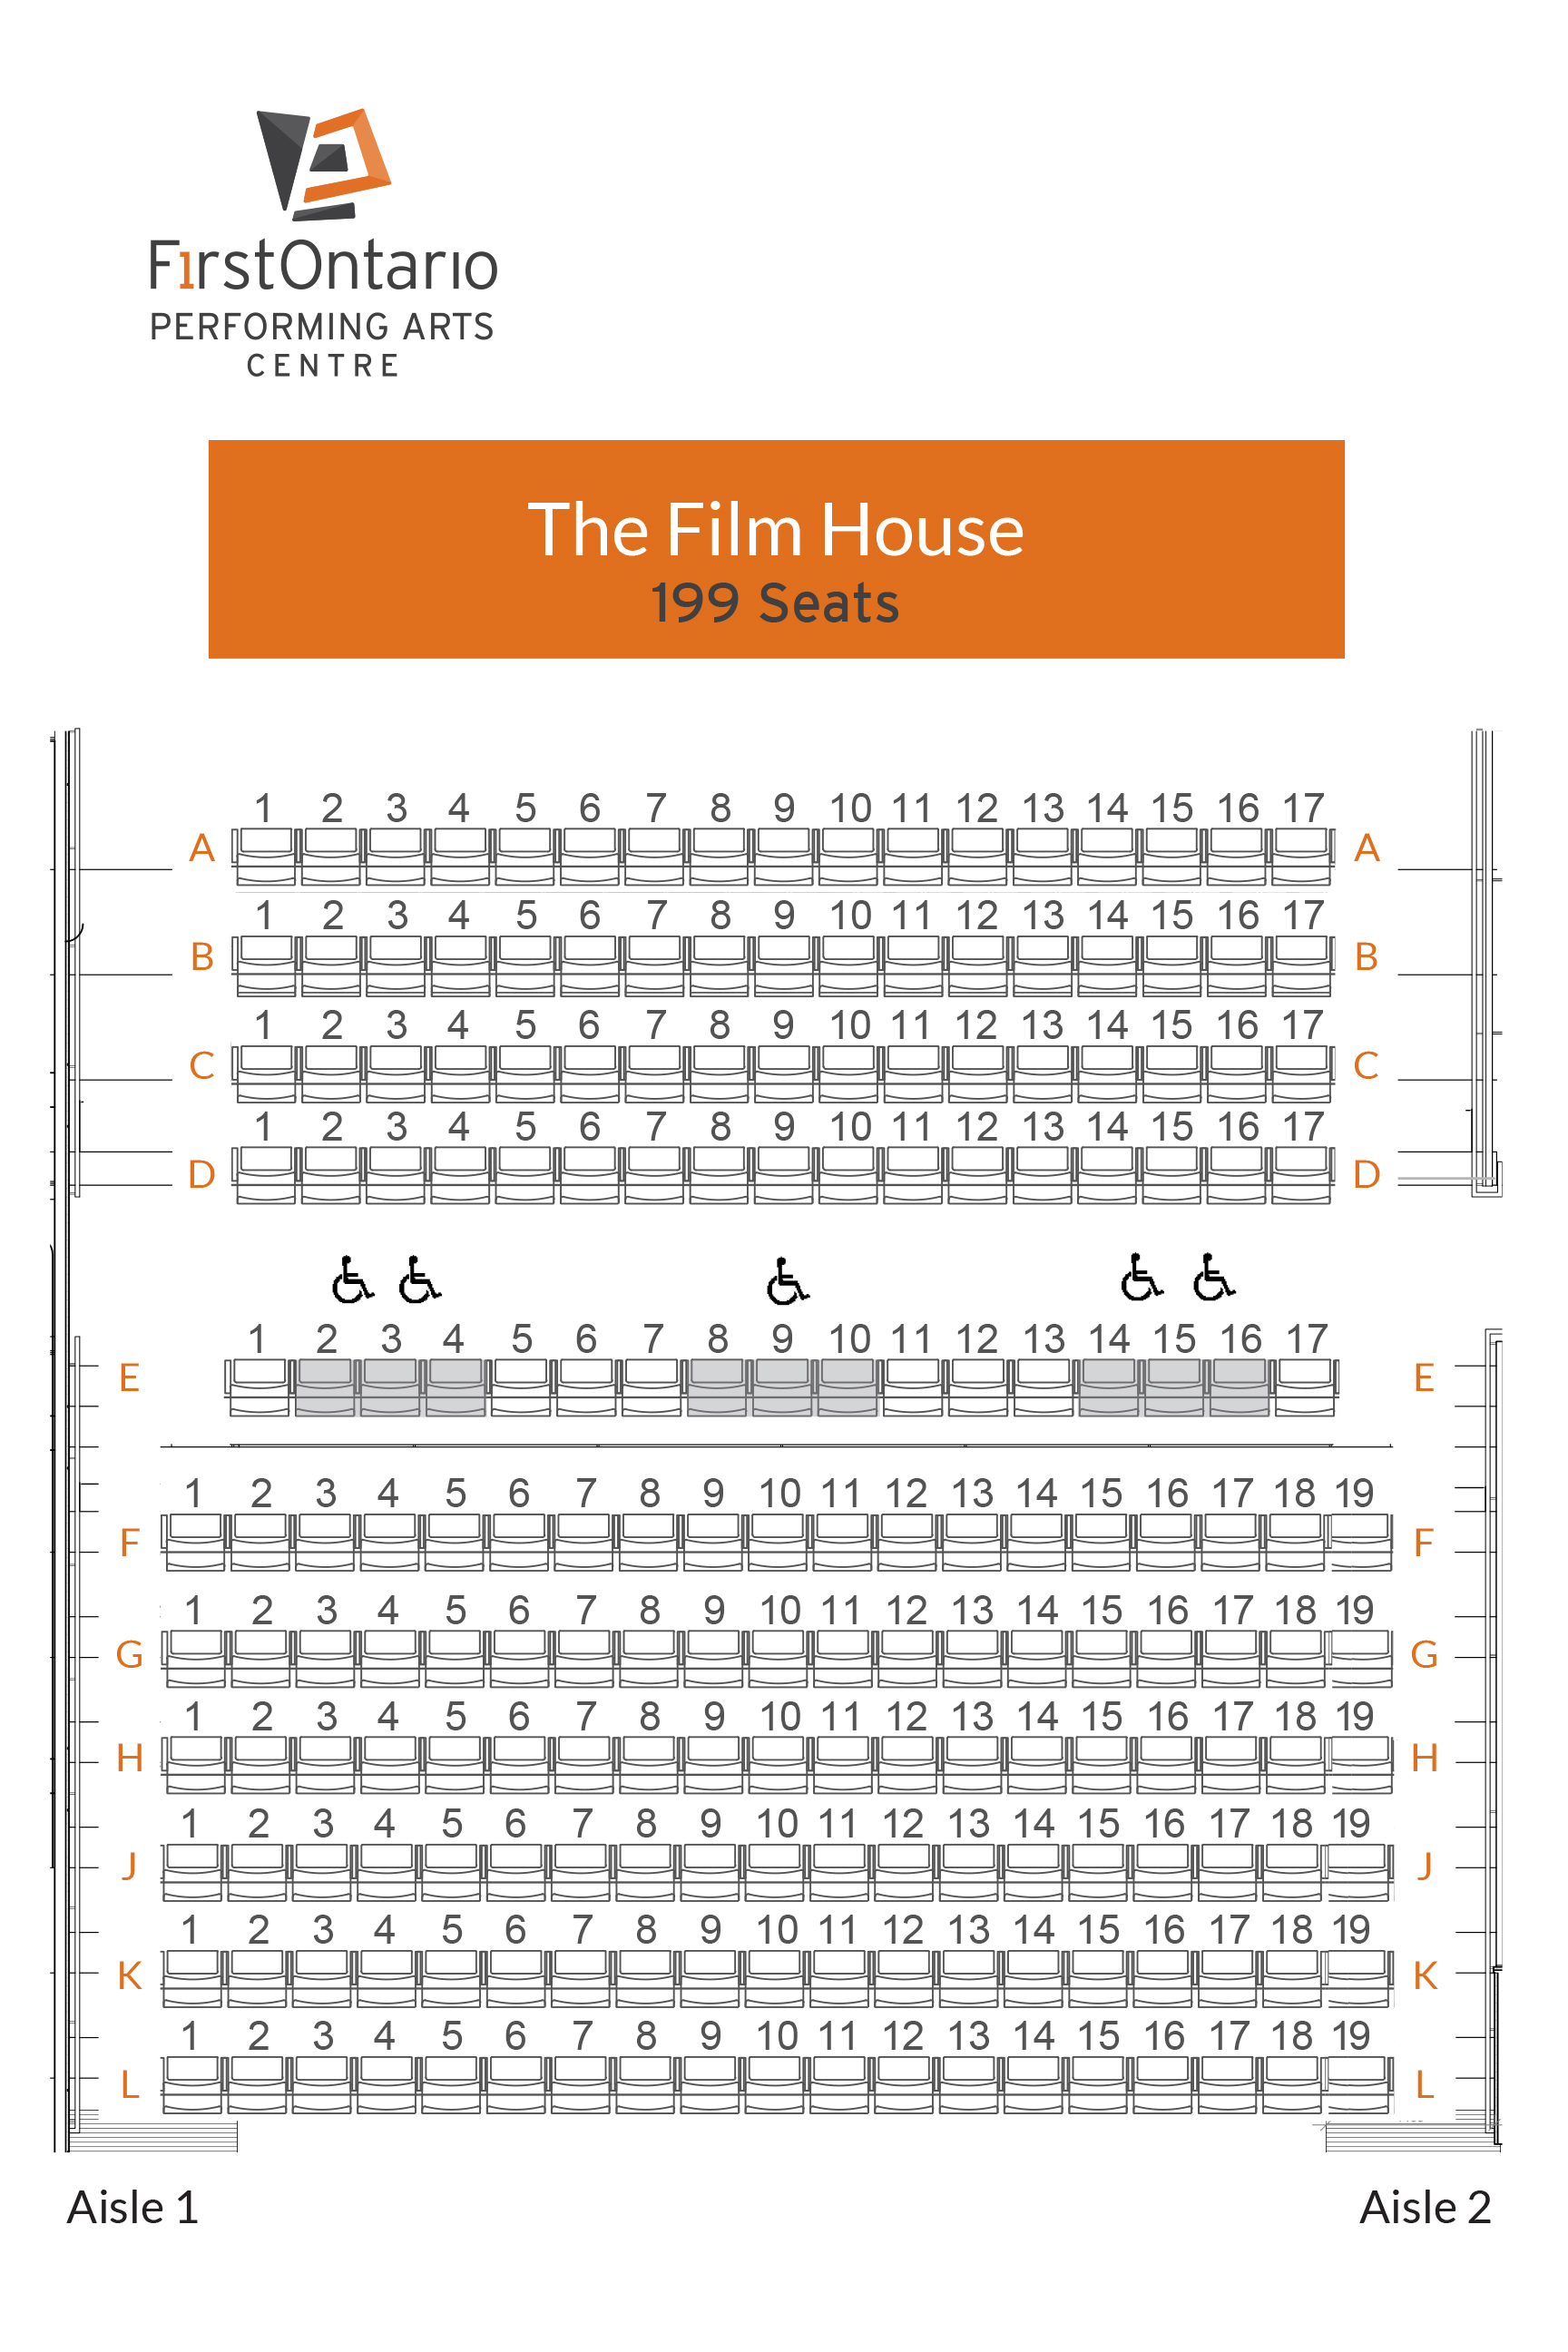 Film Hall - Seat Map